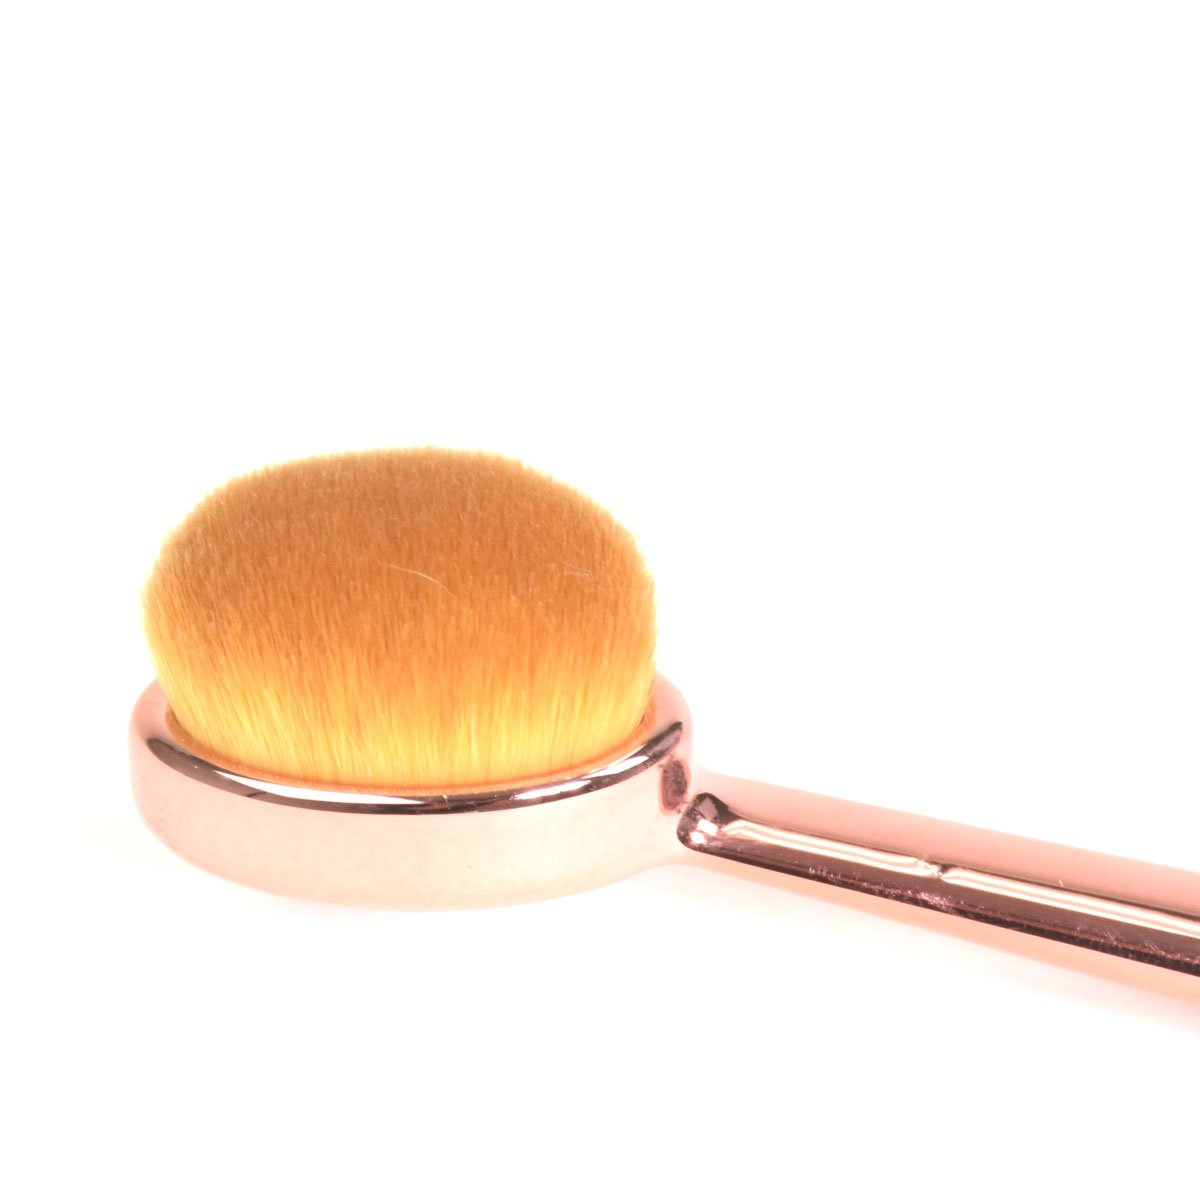 Celavi Oval Makeup Brush Professional Cosmetic Tools for Face, Foundation, Creams, Liquids, Moisturizer, Powder, Blush, Concealer, Contour-Beauty-Celavi Cosmetics-Celavi Cosmetics